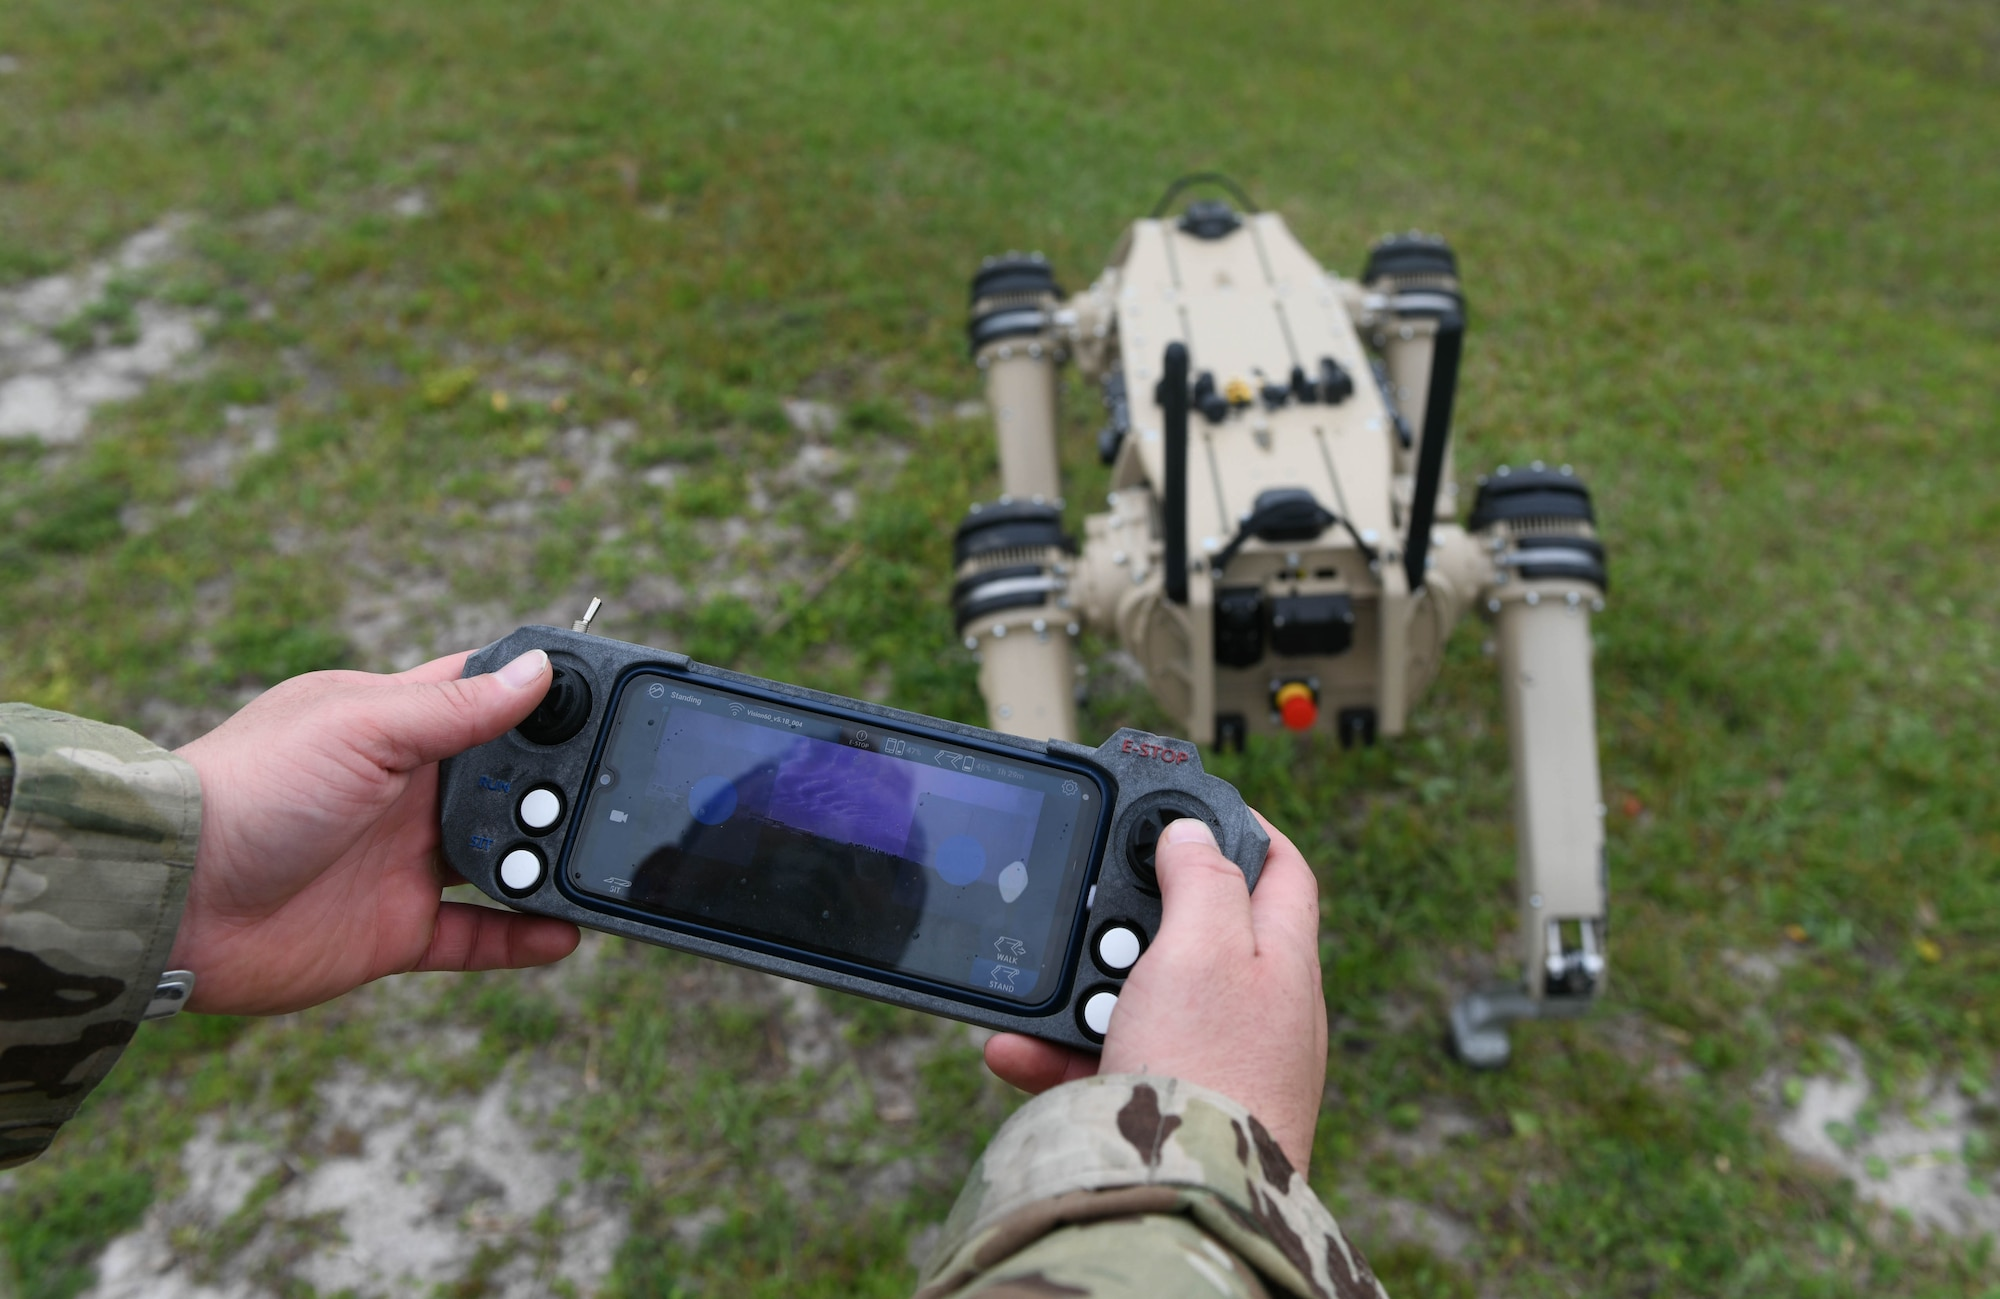 Master Sgt. Krystoffer Miller controls a robot dog by a hand-held controller